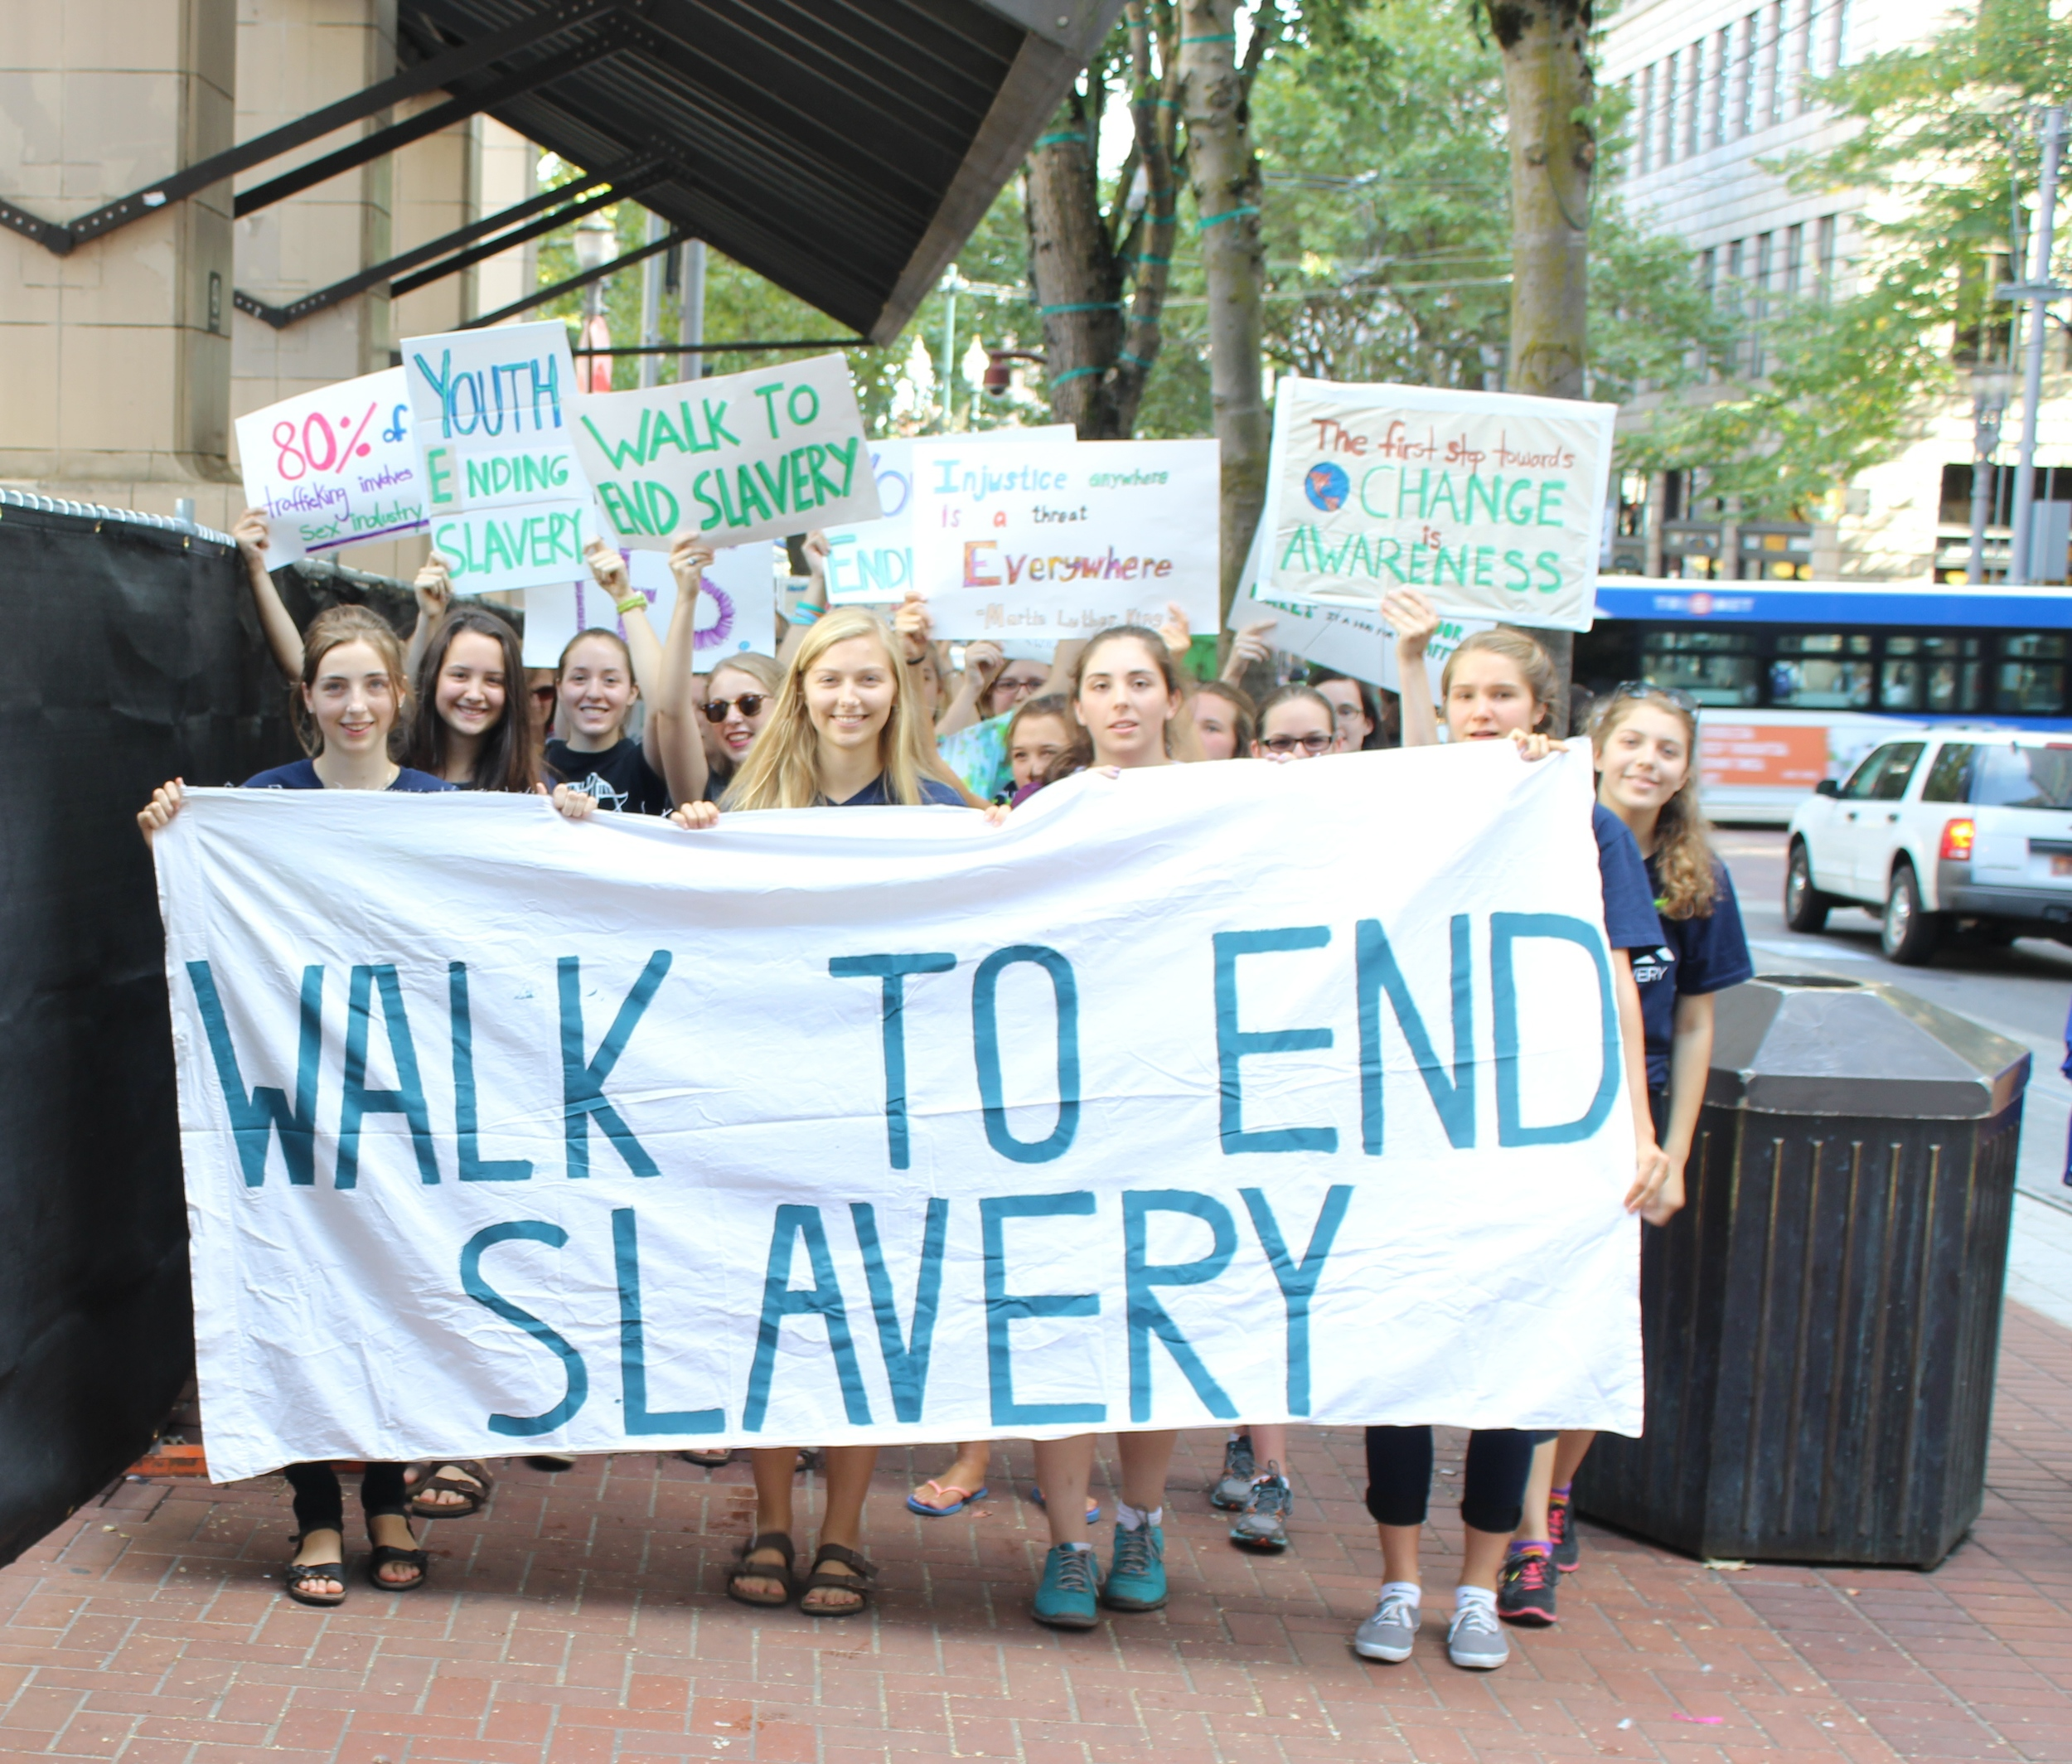 Youth Ending Slavery